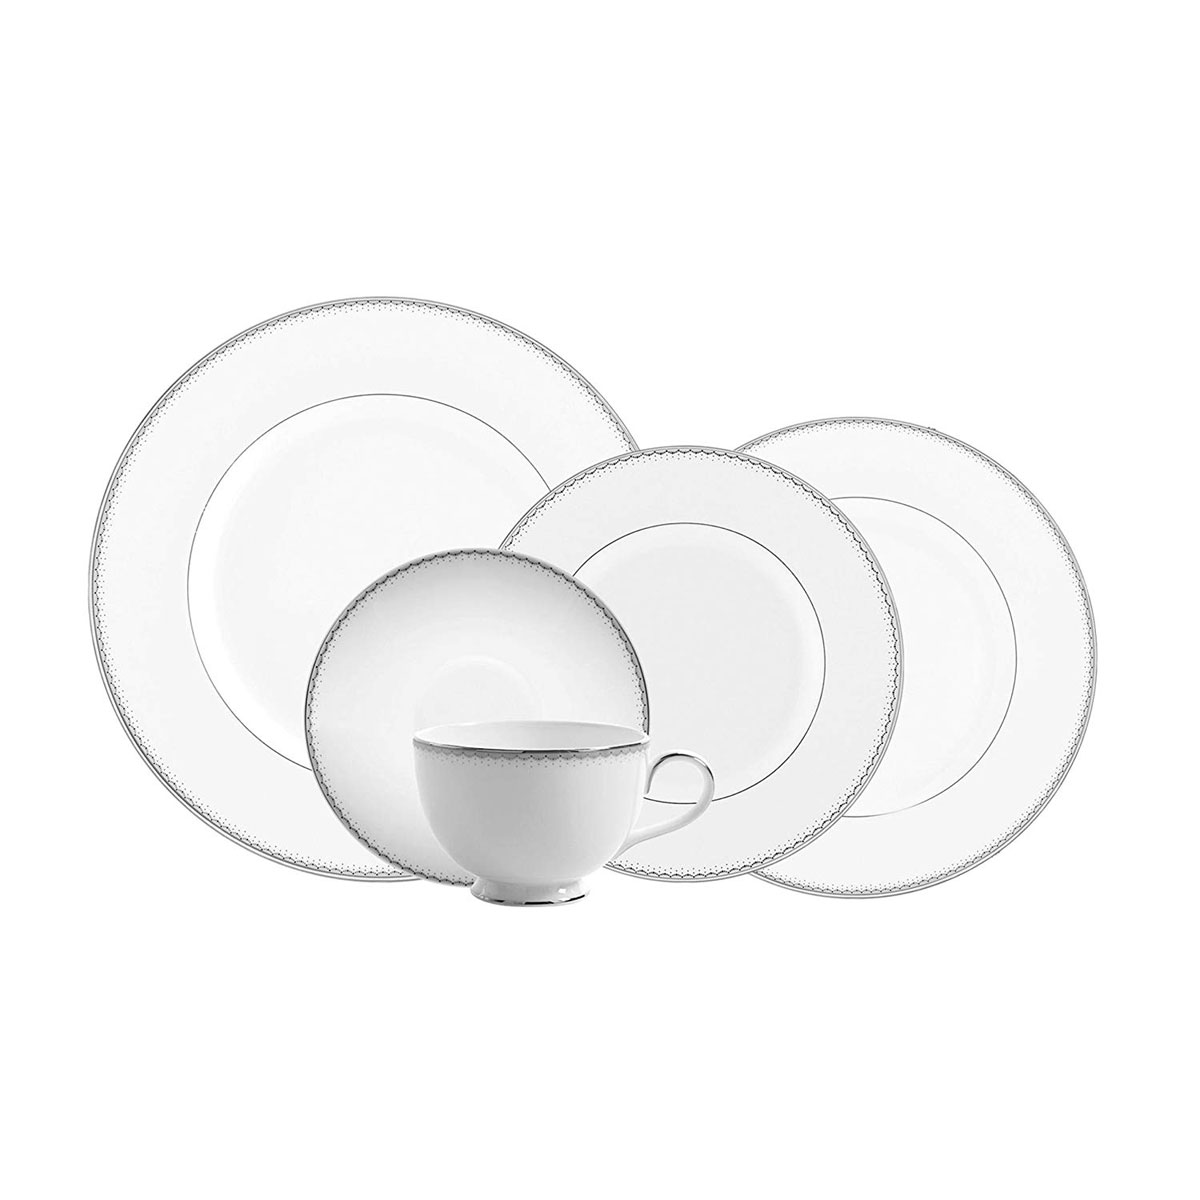 Royal Doulton Dentelle Collection, Bread and Butter Plate, Single